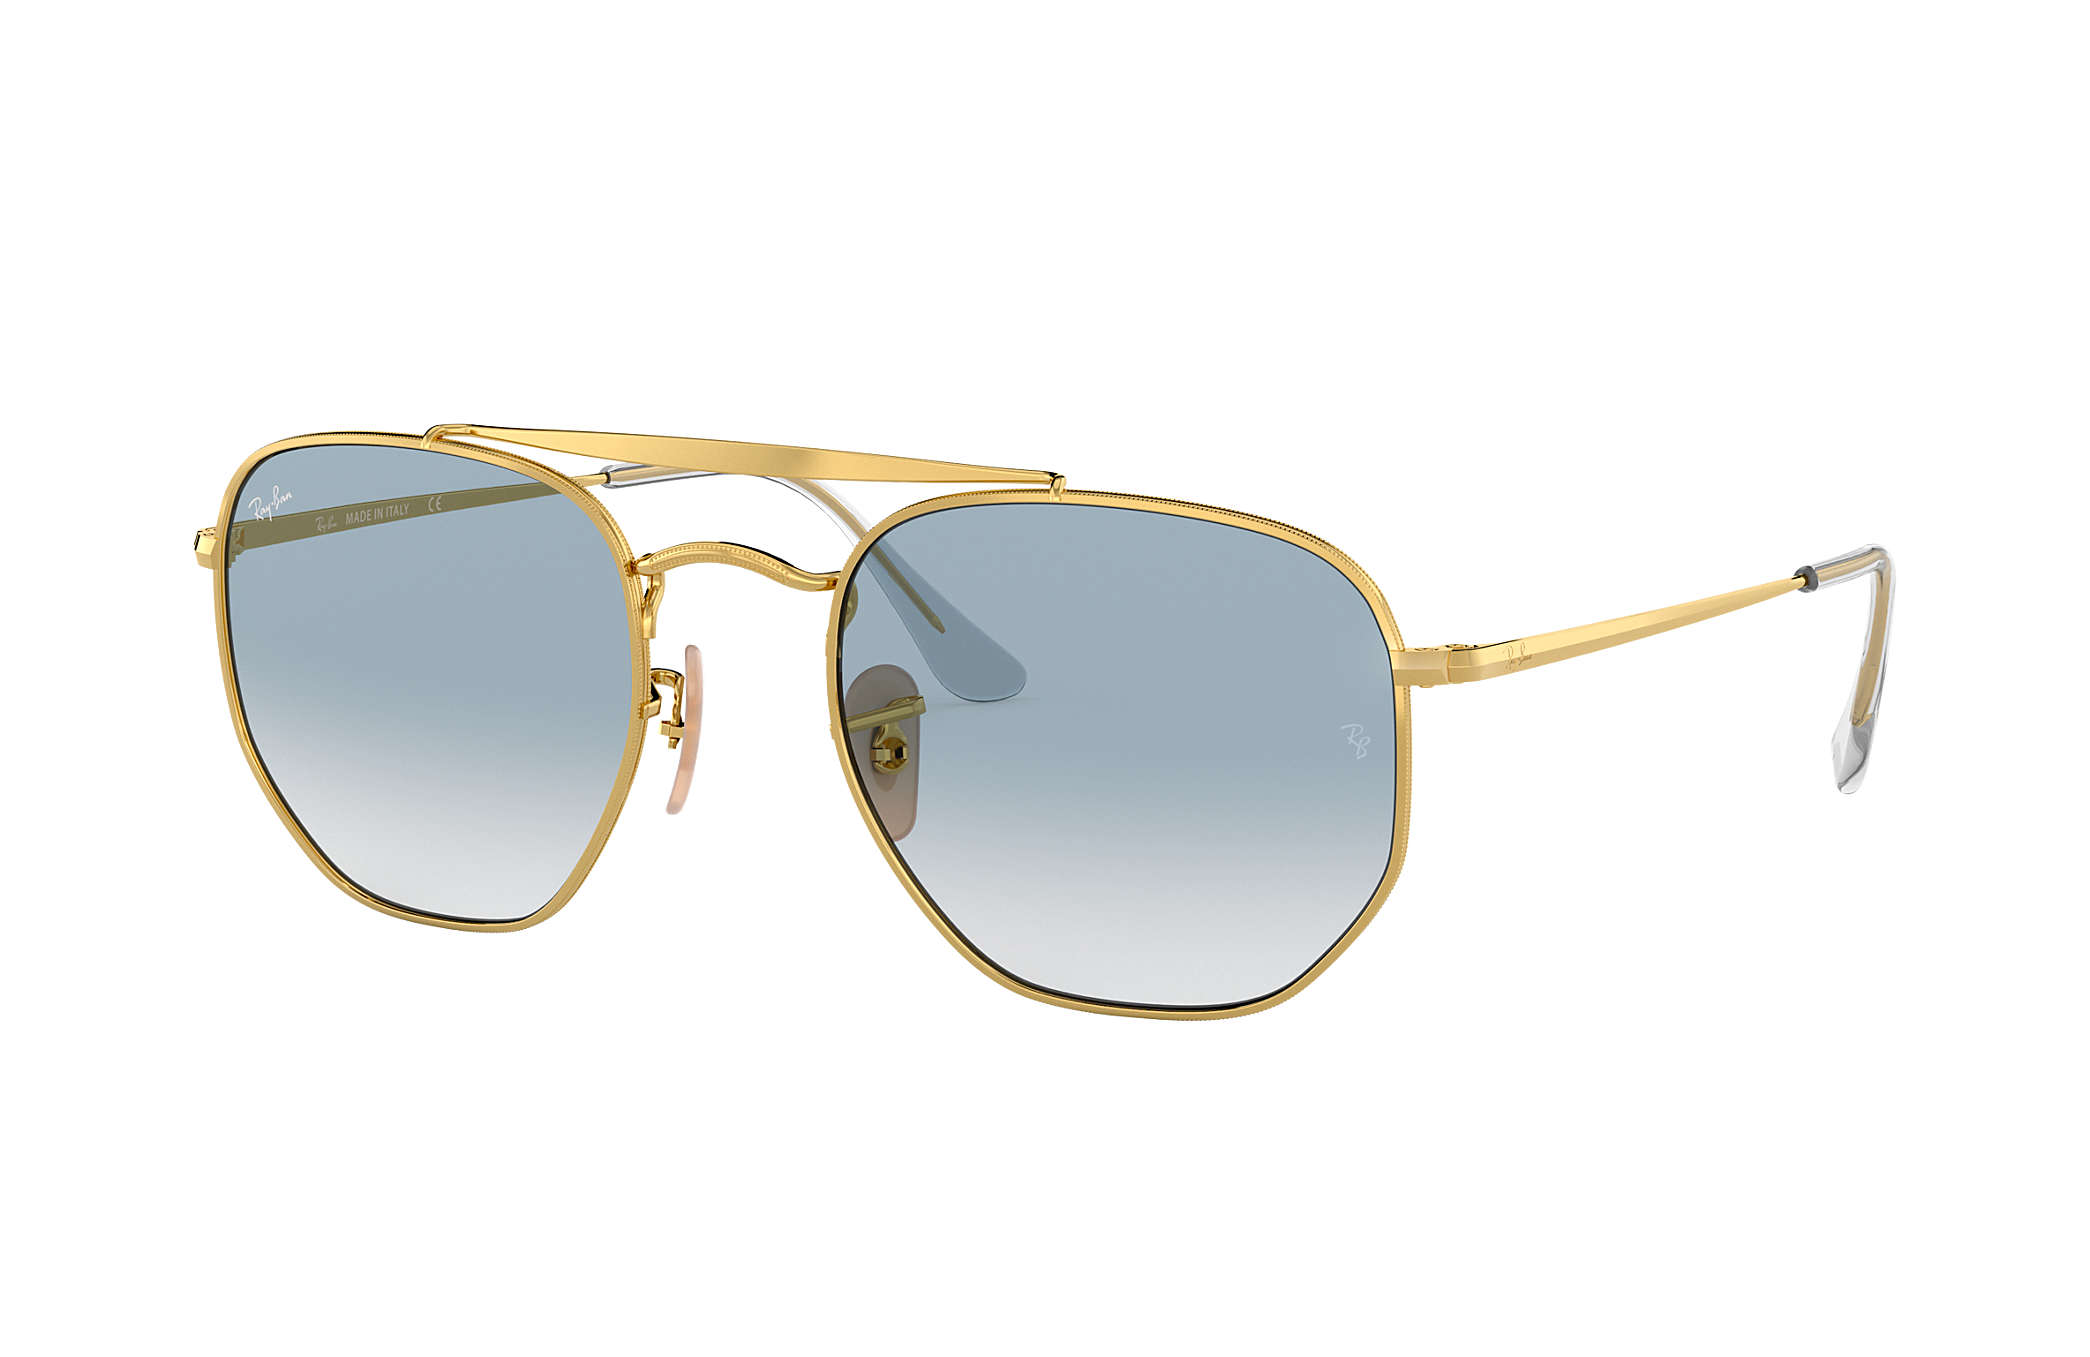 Ray Ban Ray-Ban 0RB3648 THE MARSHAL 001 Gold Gr. 51/21 (mit Sehstärke) UKBDNV